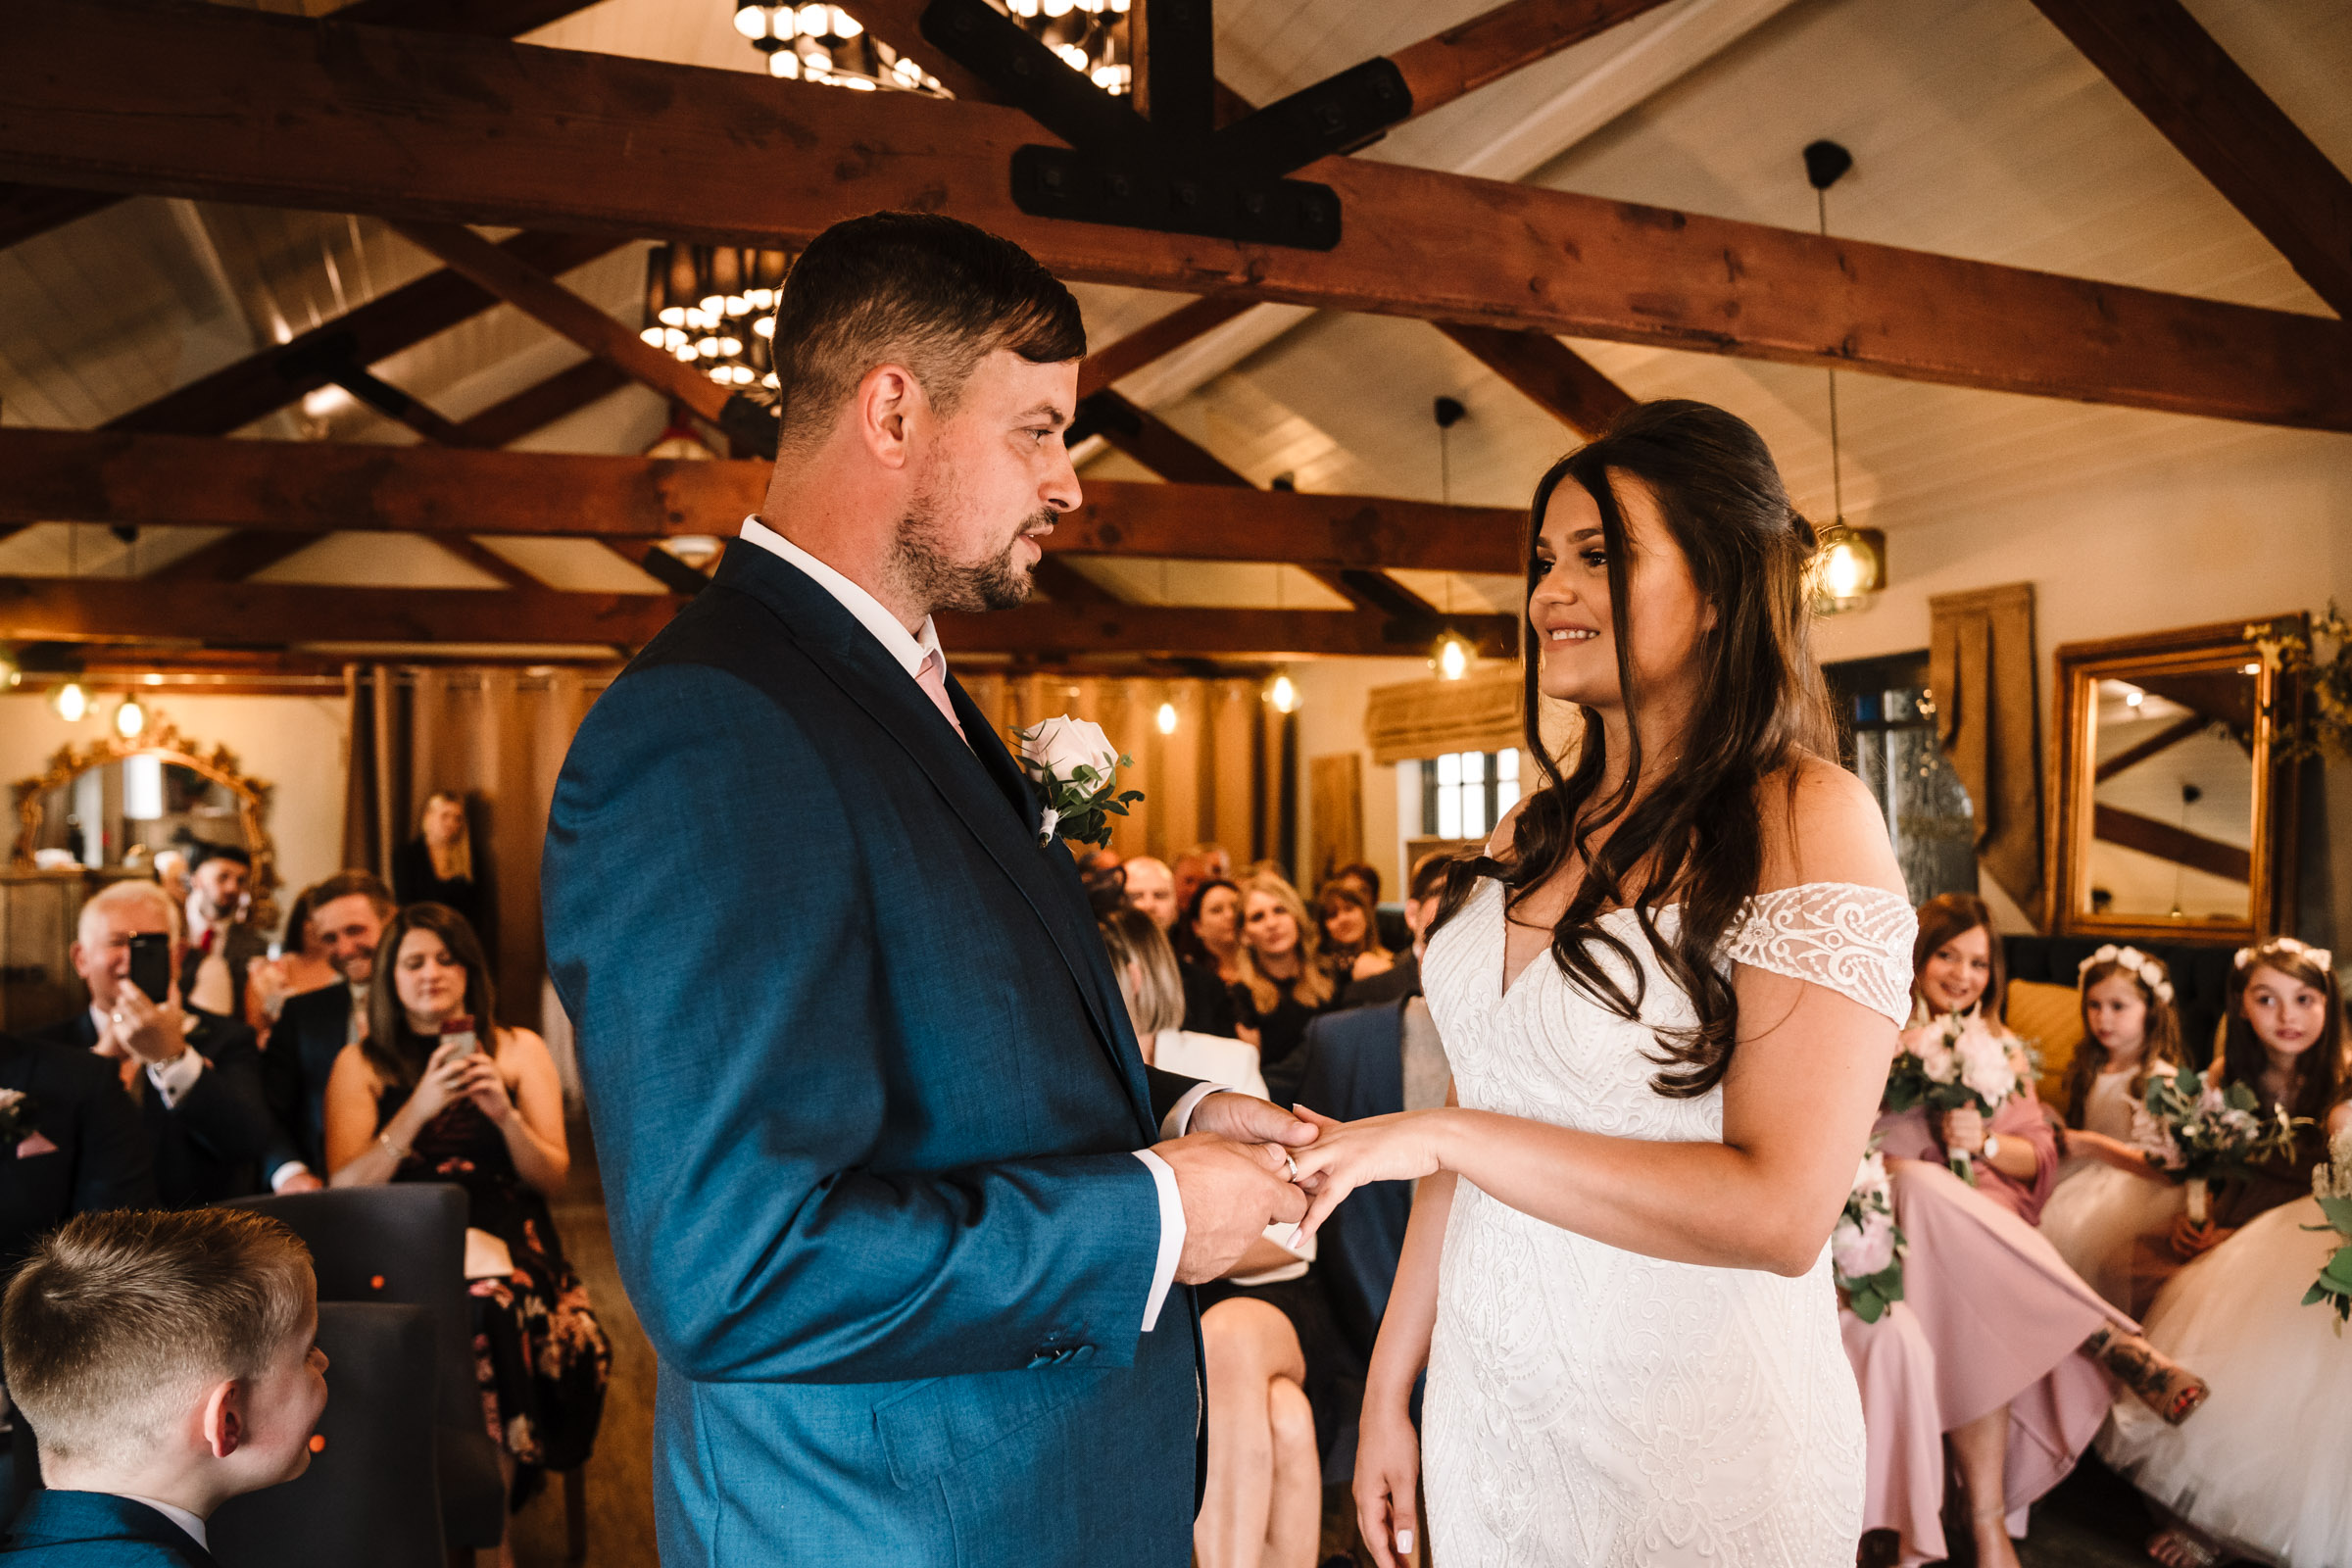 Brid mand groom exchanging rings during wedding ceremony